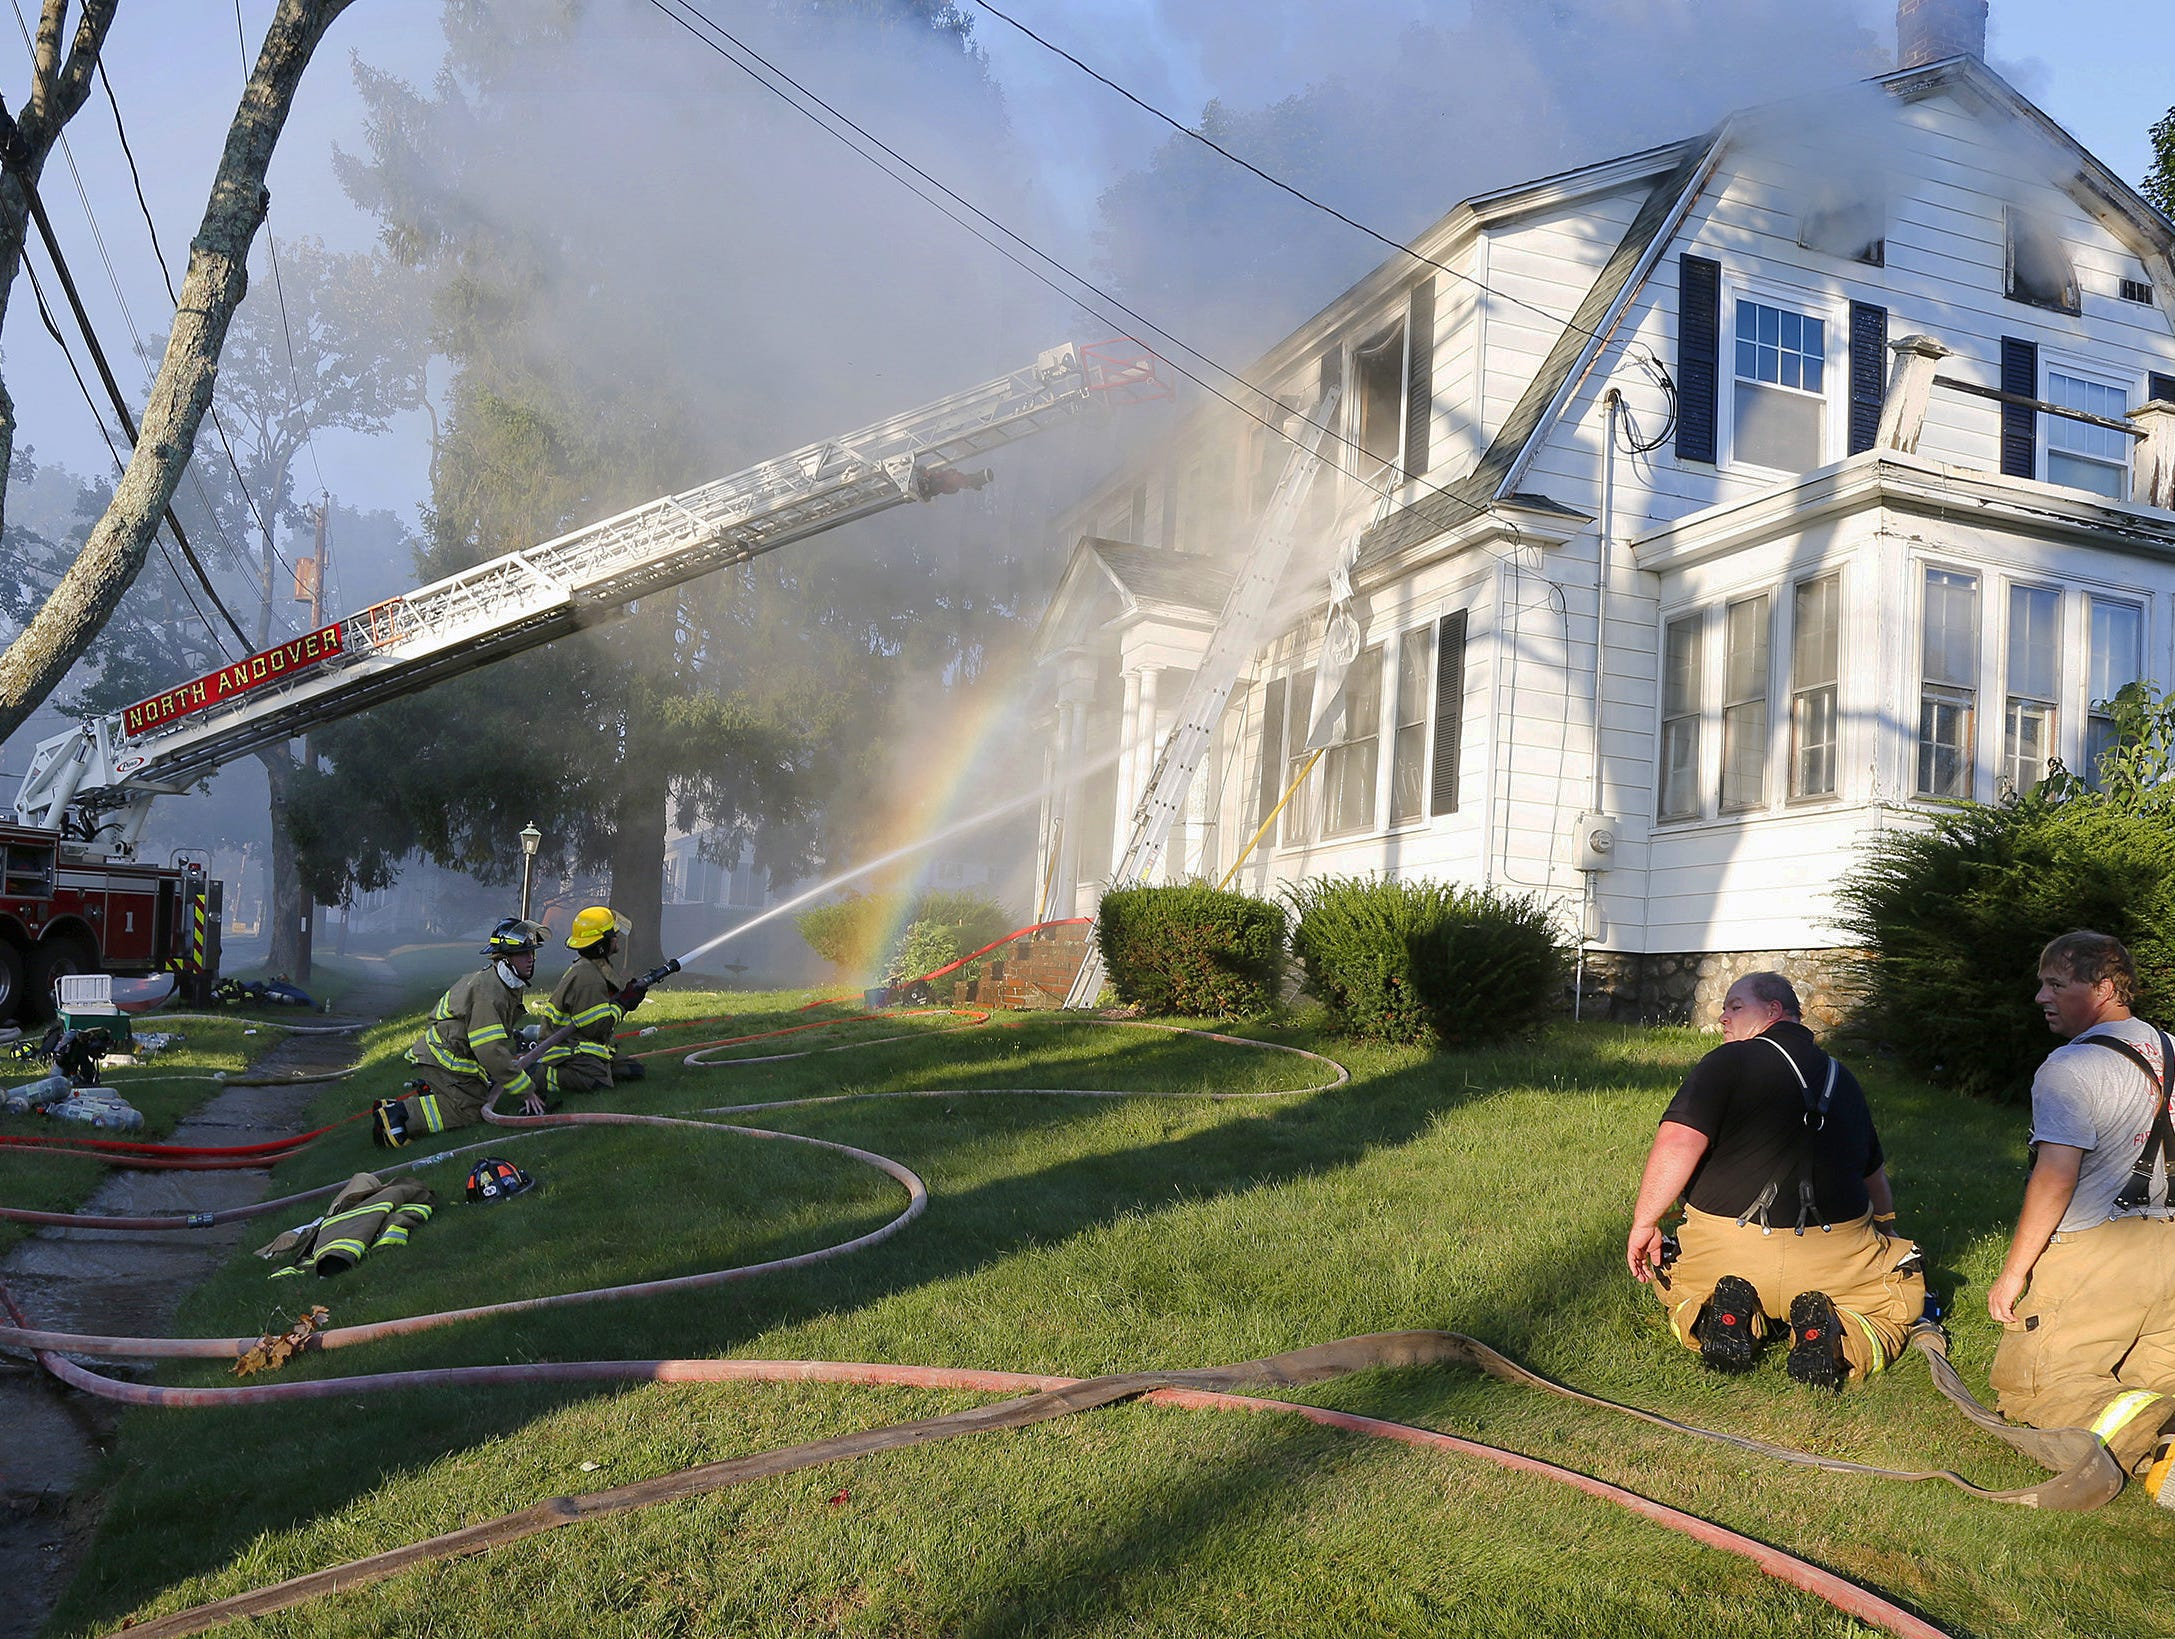 Firefighters battle a house fire, Thursday, Sept. 13, 2018, on Herrick Road in North Andover, Mass., one of multiple emergency crews responding to a series of gas explosions and fires triggered by a problem with a gas line that feeds homes in several communities north of Boston.